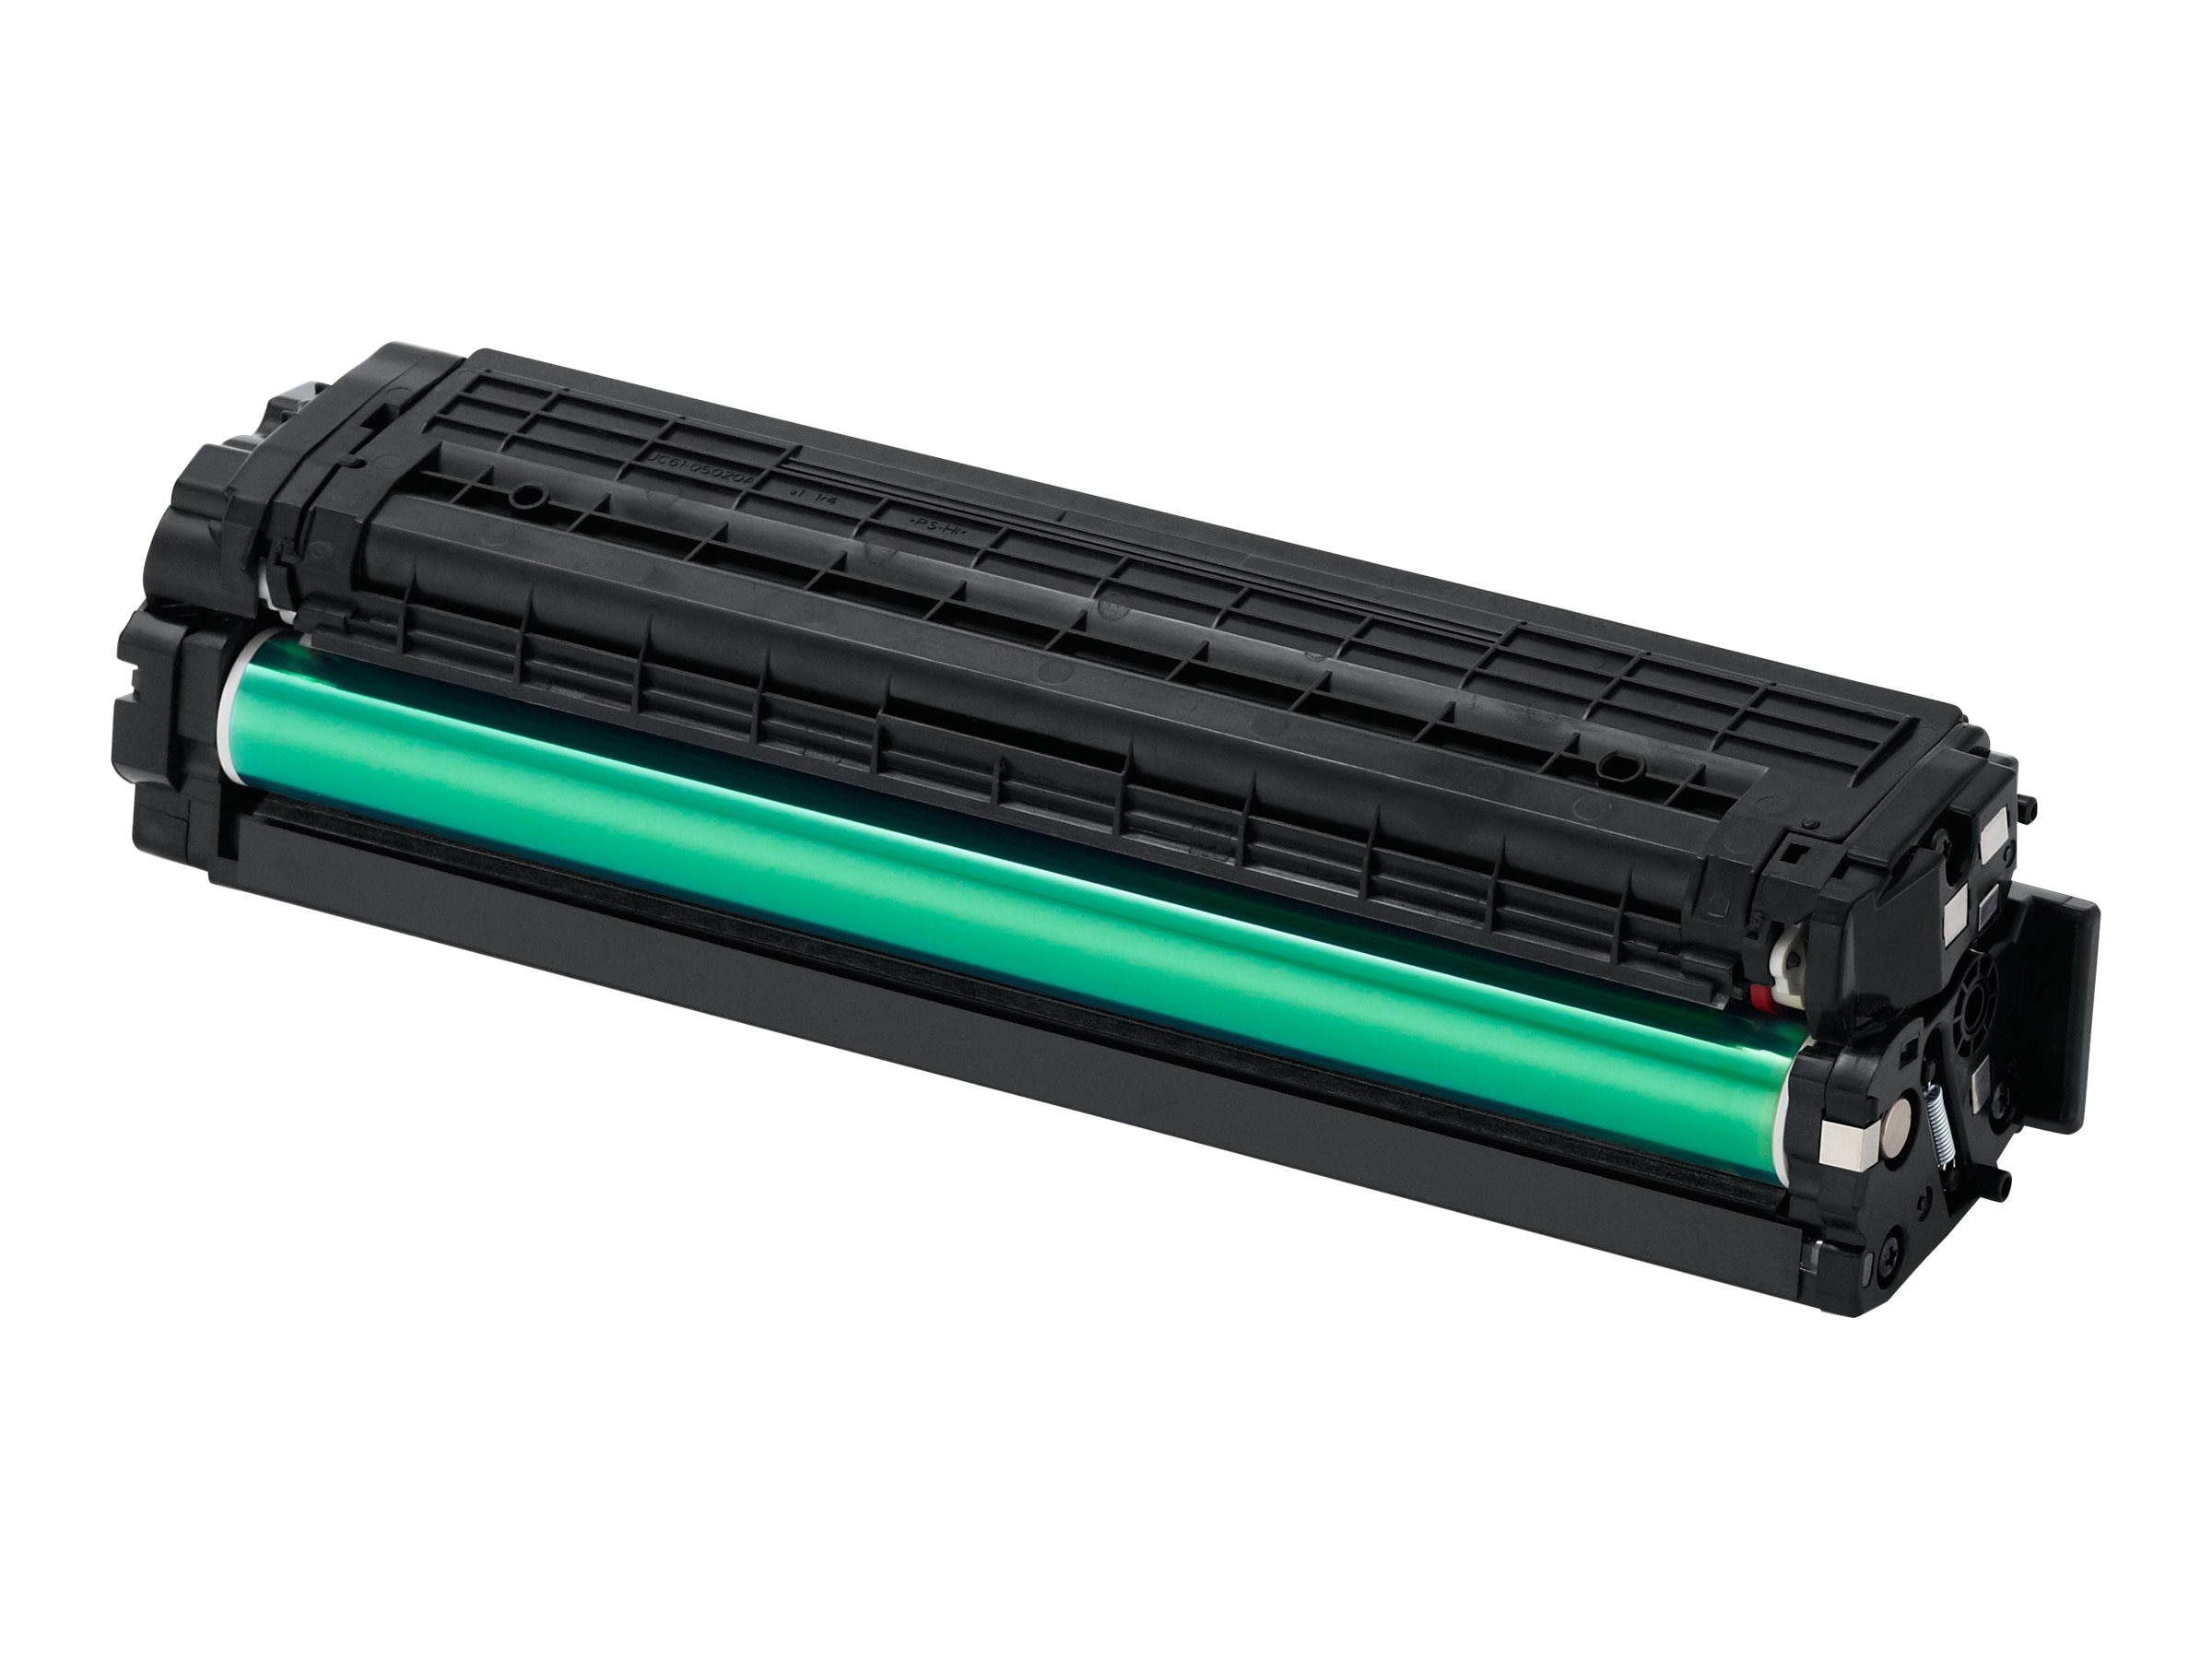 Samsung Yellow Toner Cartridge for CLP-415NW Color Laser Printer &  CLX-4195FW Color Multifunction Printer, CLT-Y504S